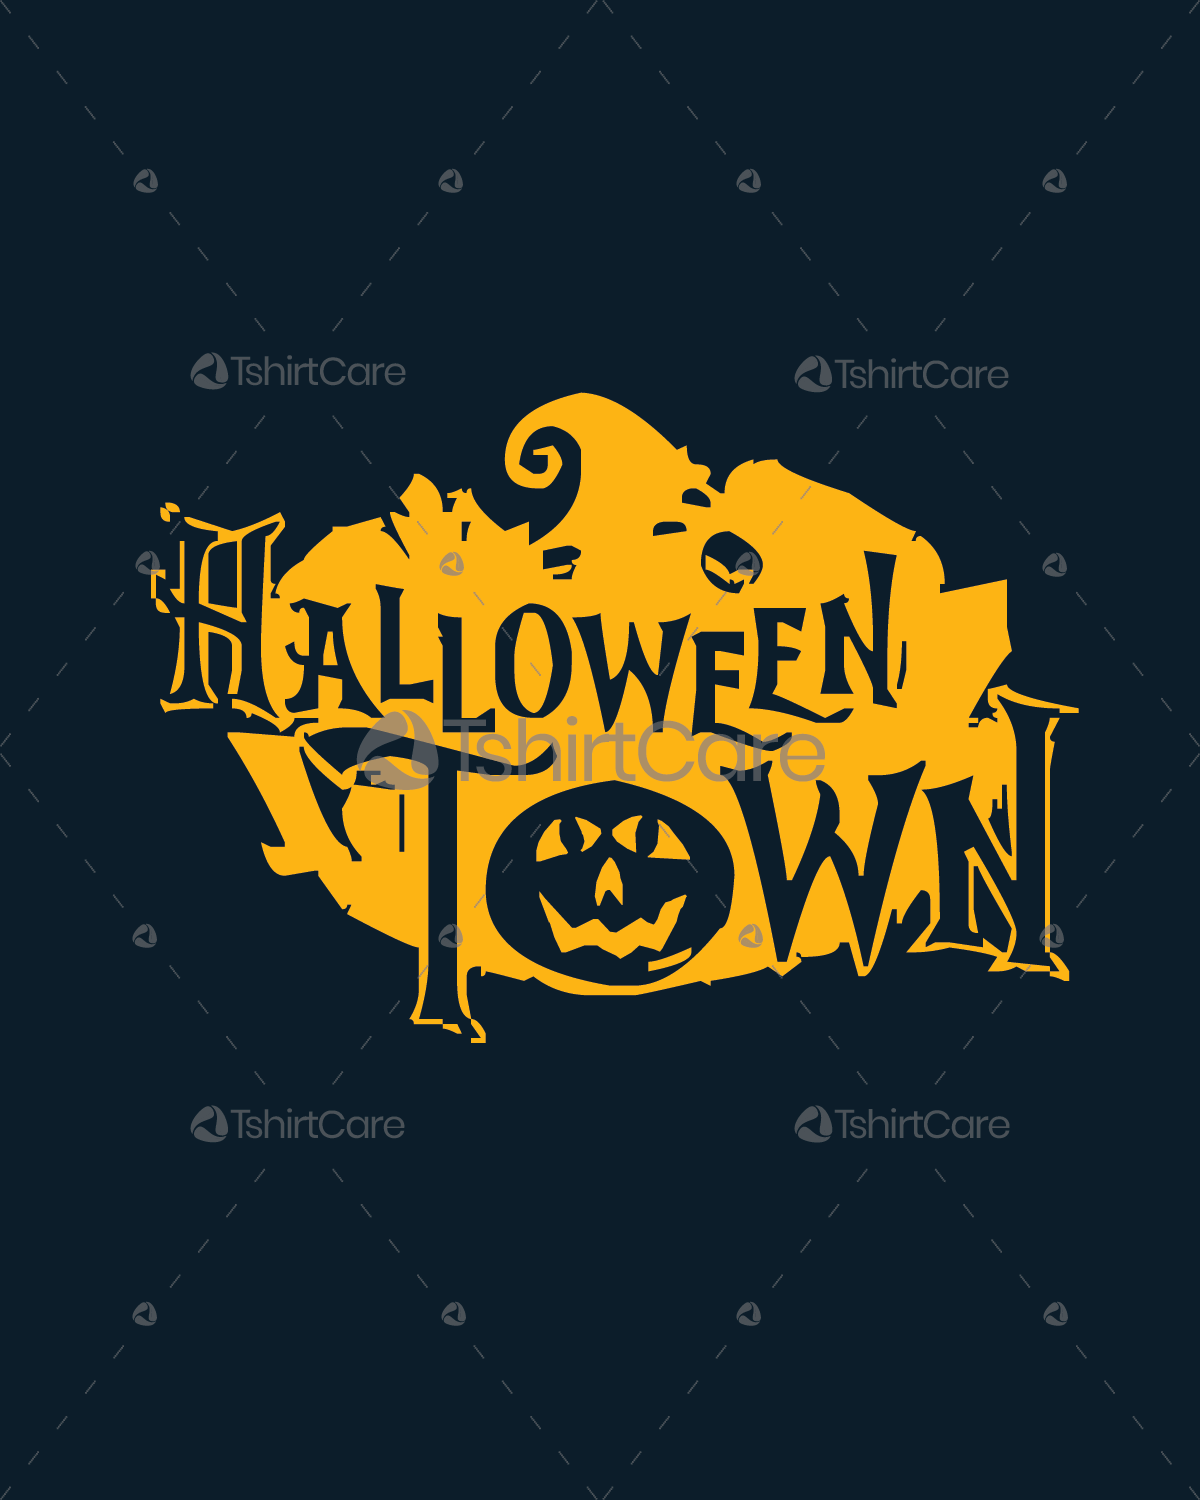 halloween town t shirt design happy halloween day tee shirts for men rh tshirtcare com cute halloween shirt designs halloween tee shirt designs